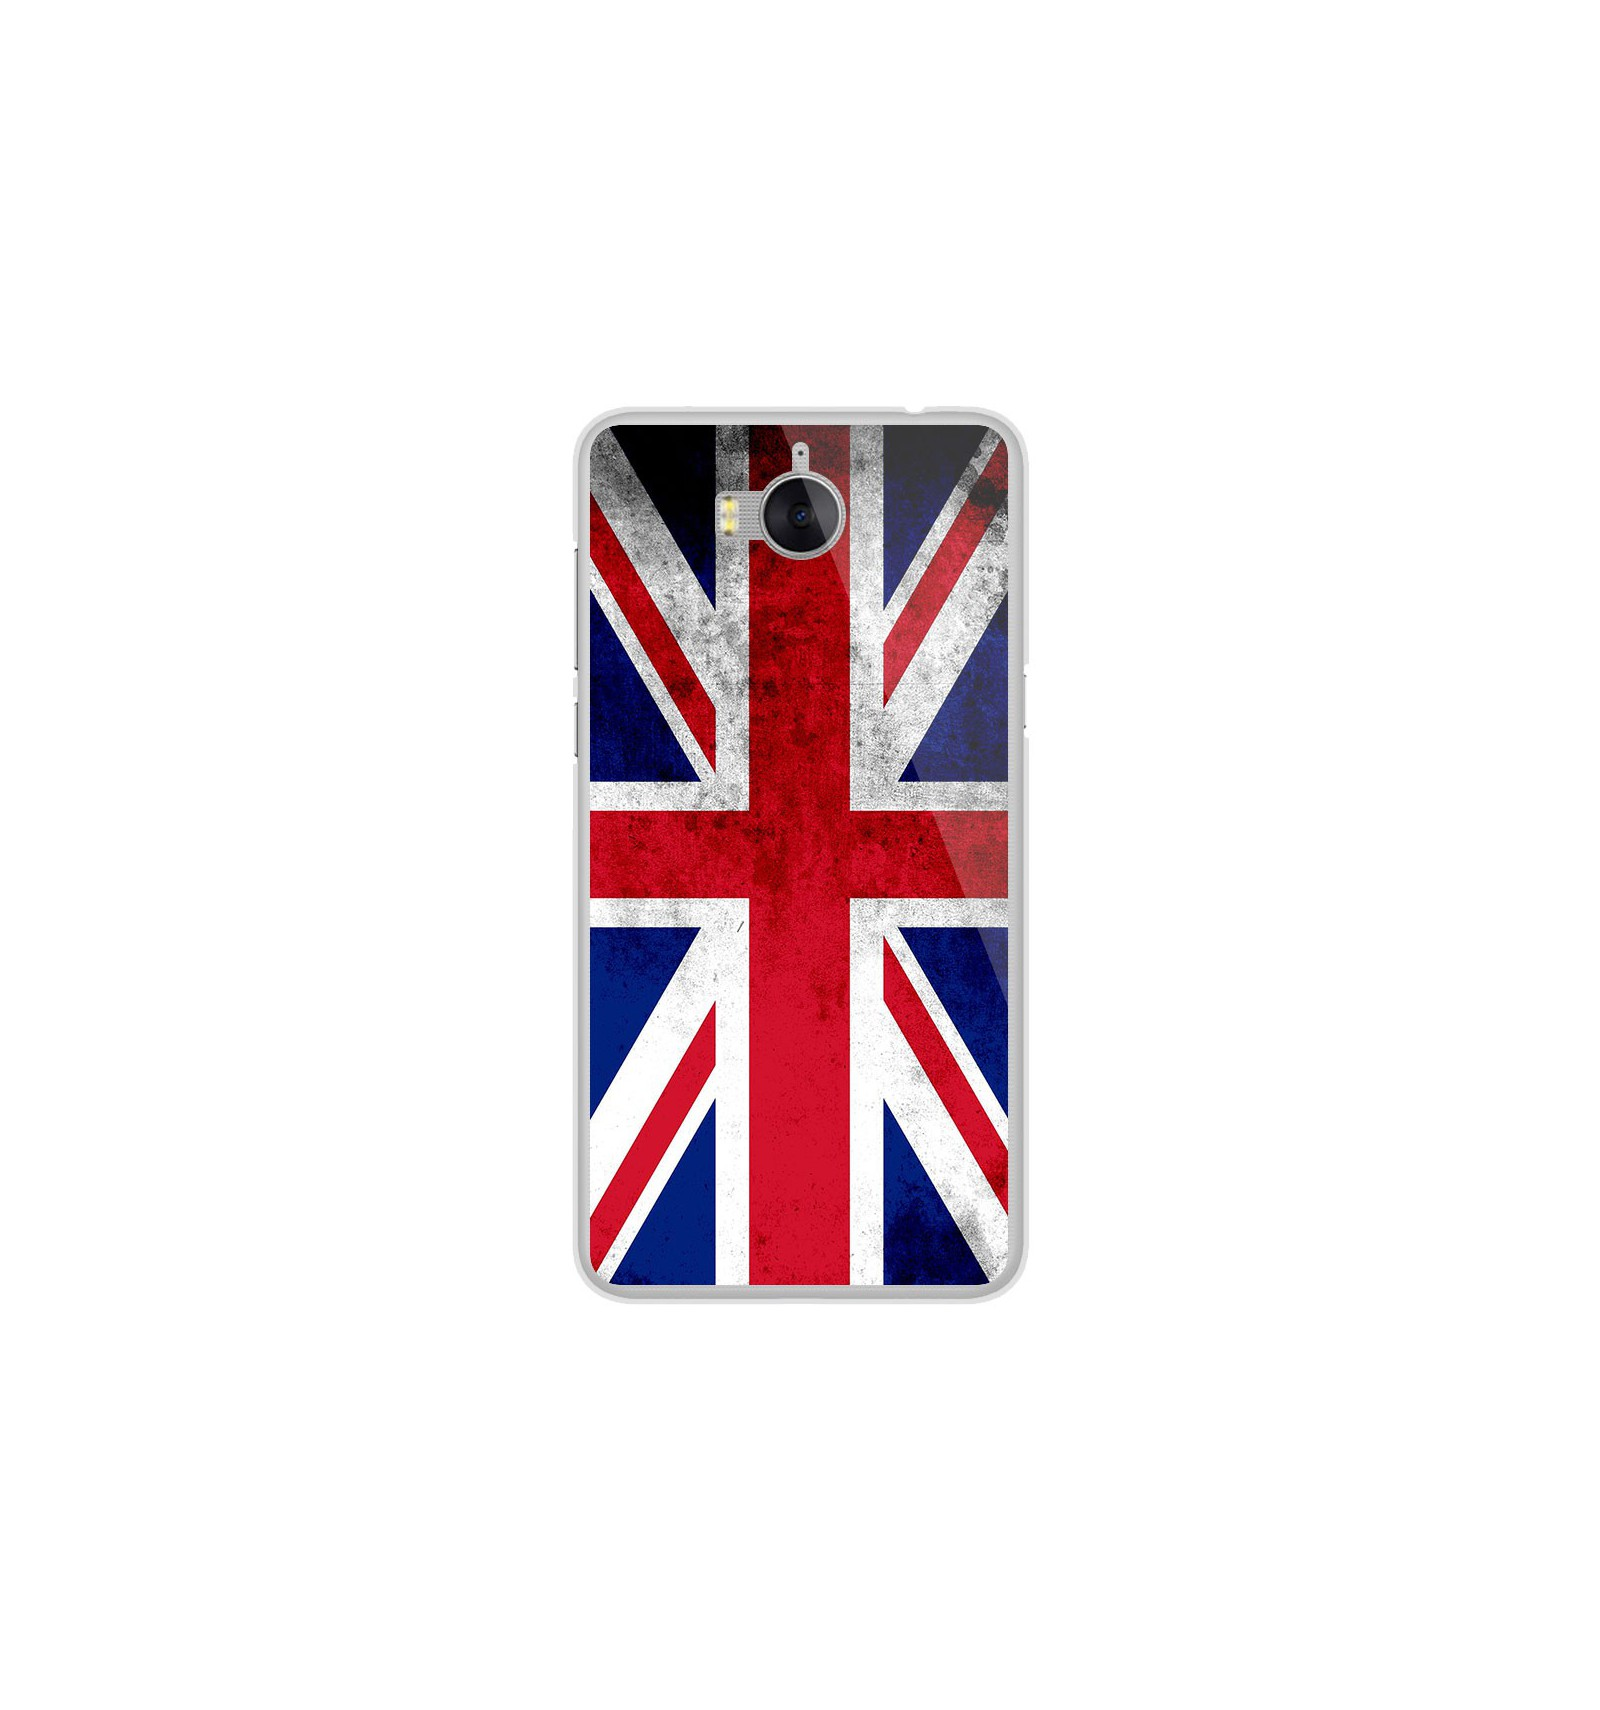 coque huawei y6 2017 angleterre